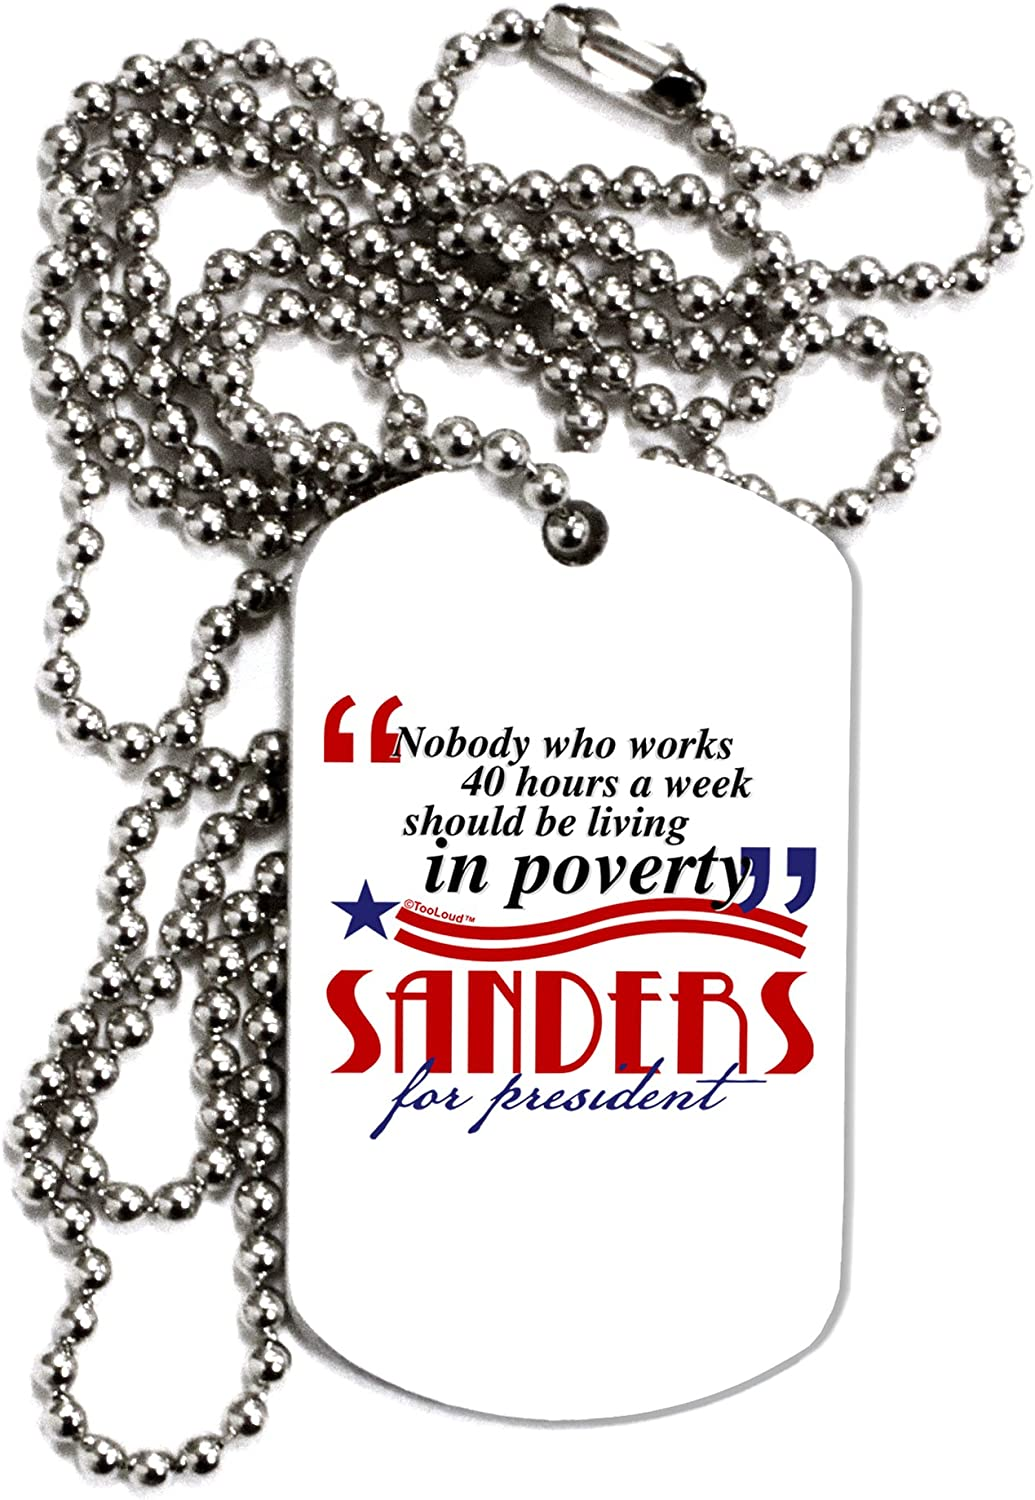 TOOLOUD Sanders Quote Adult Dog Tag Chain Necklace